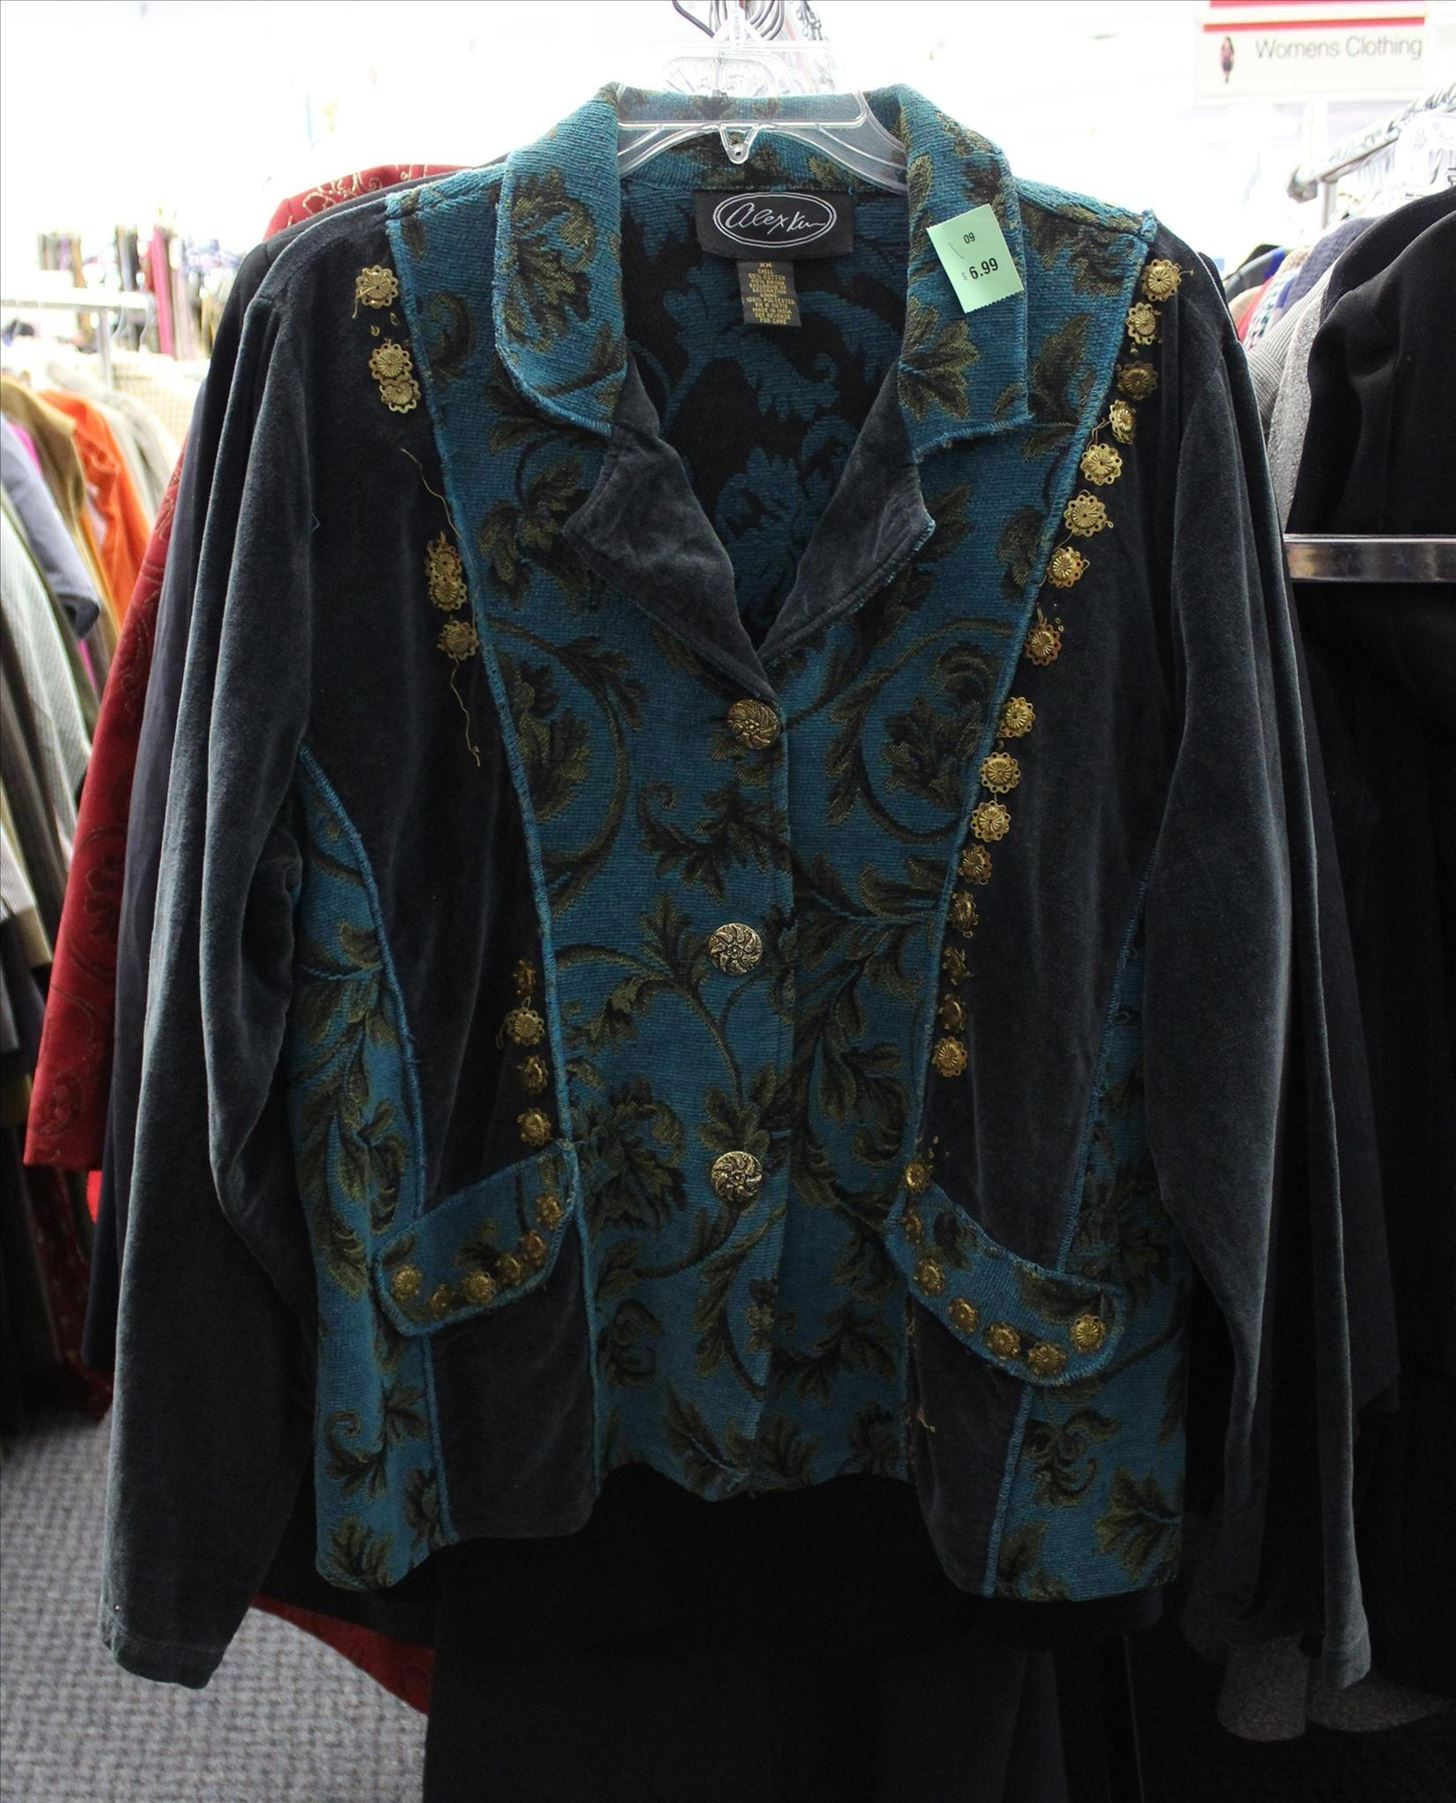 Steampunk On A Thrift Store Budget A Guide To Successful Thrifting